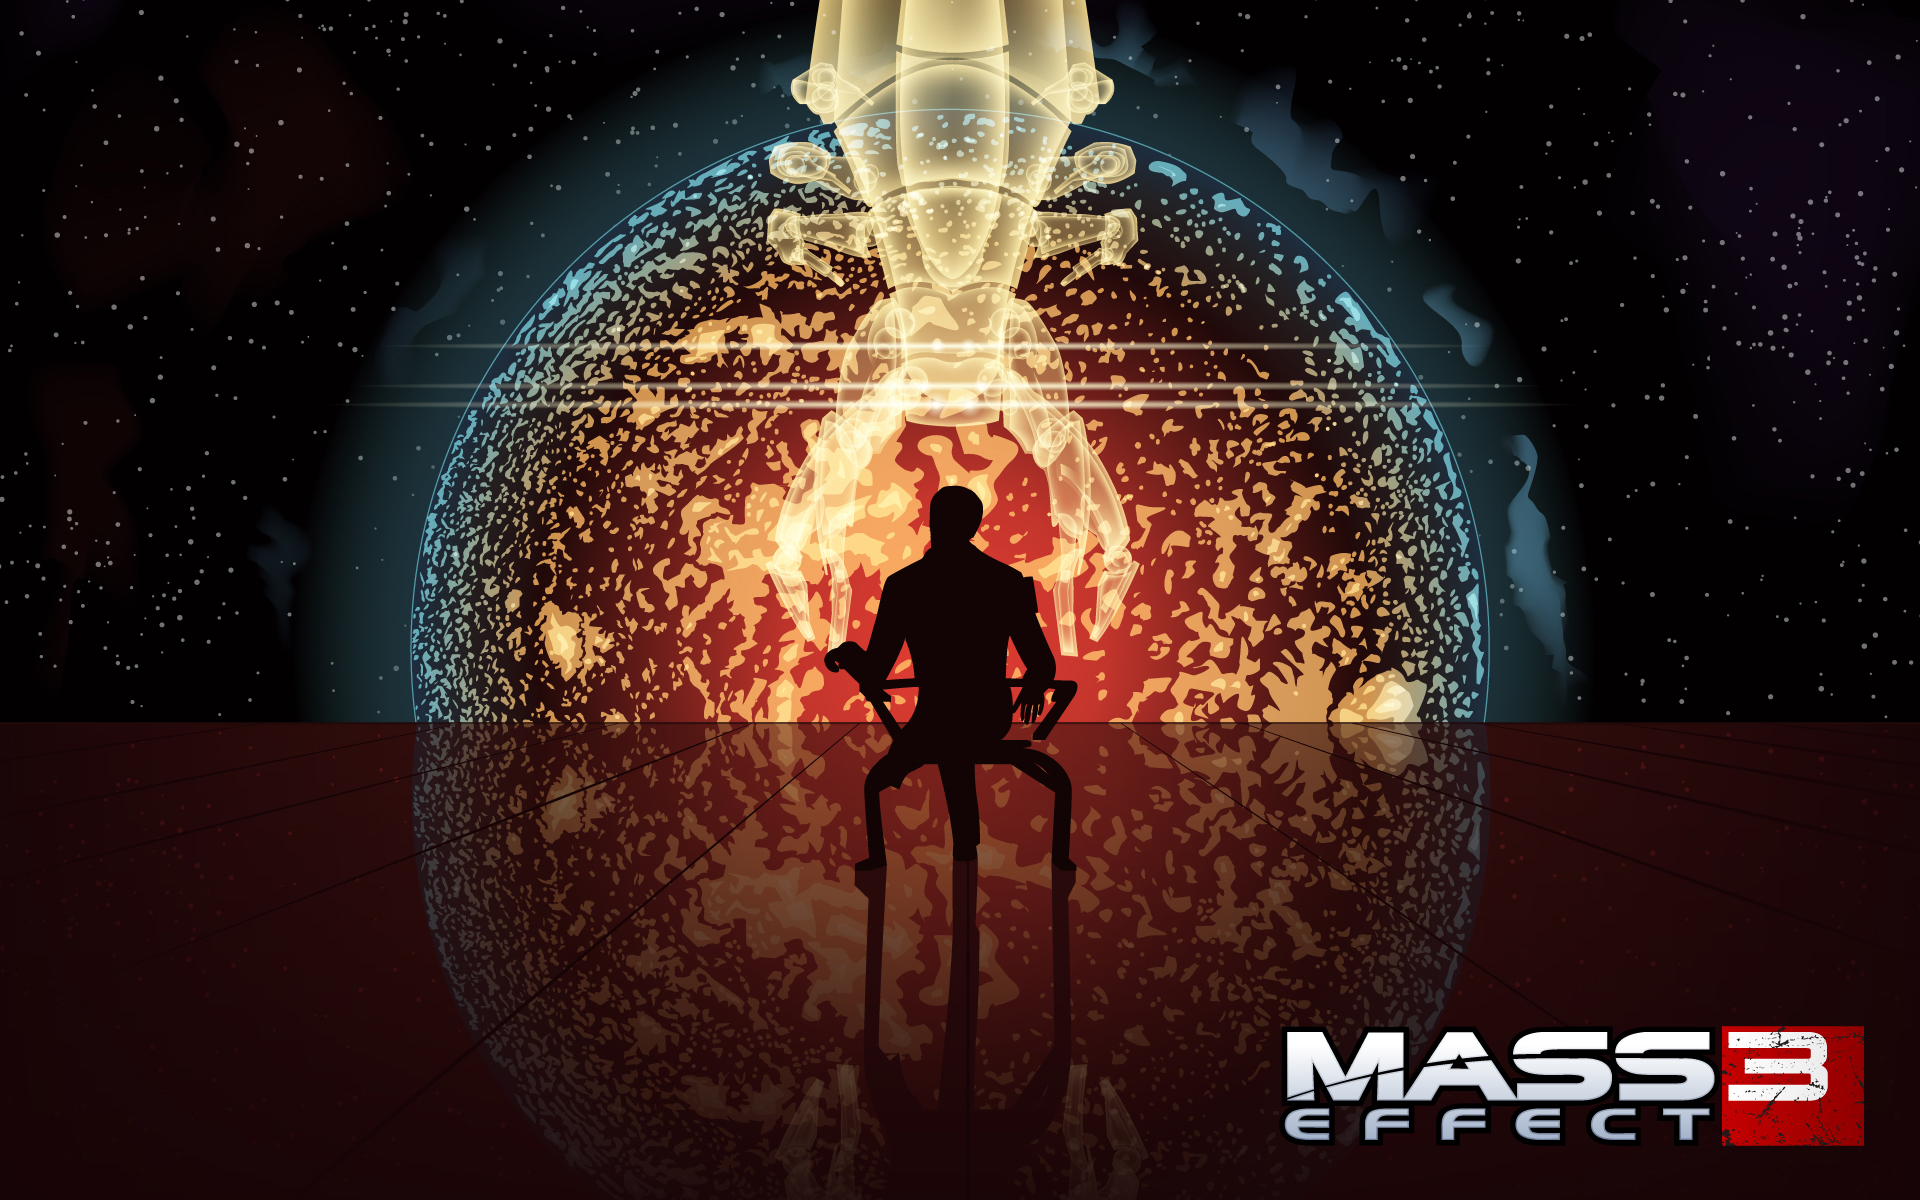 Mass Effect - Prediction